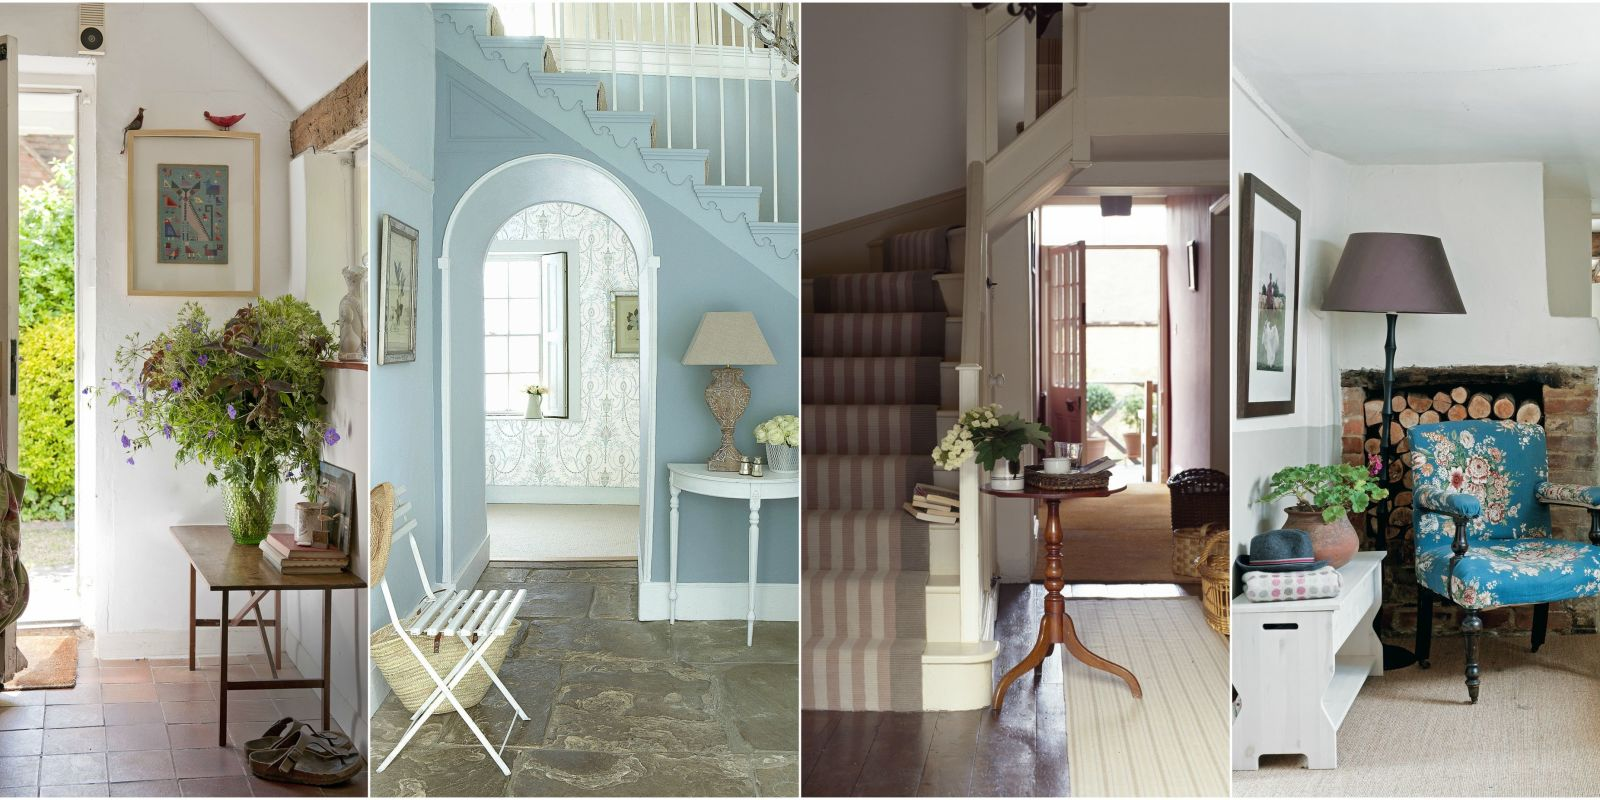 7 beautiful floor ideas to inspire your next country house redesign